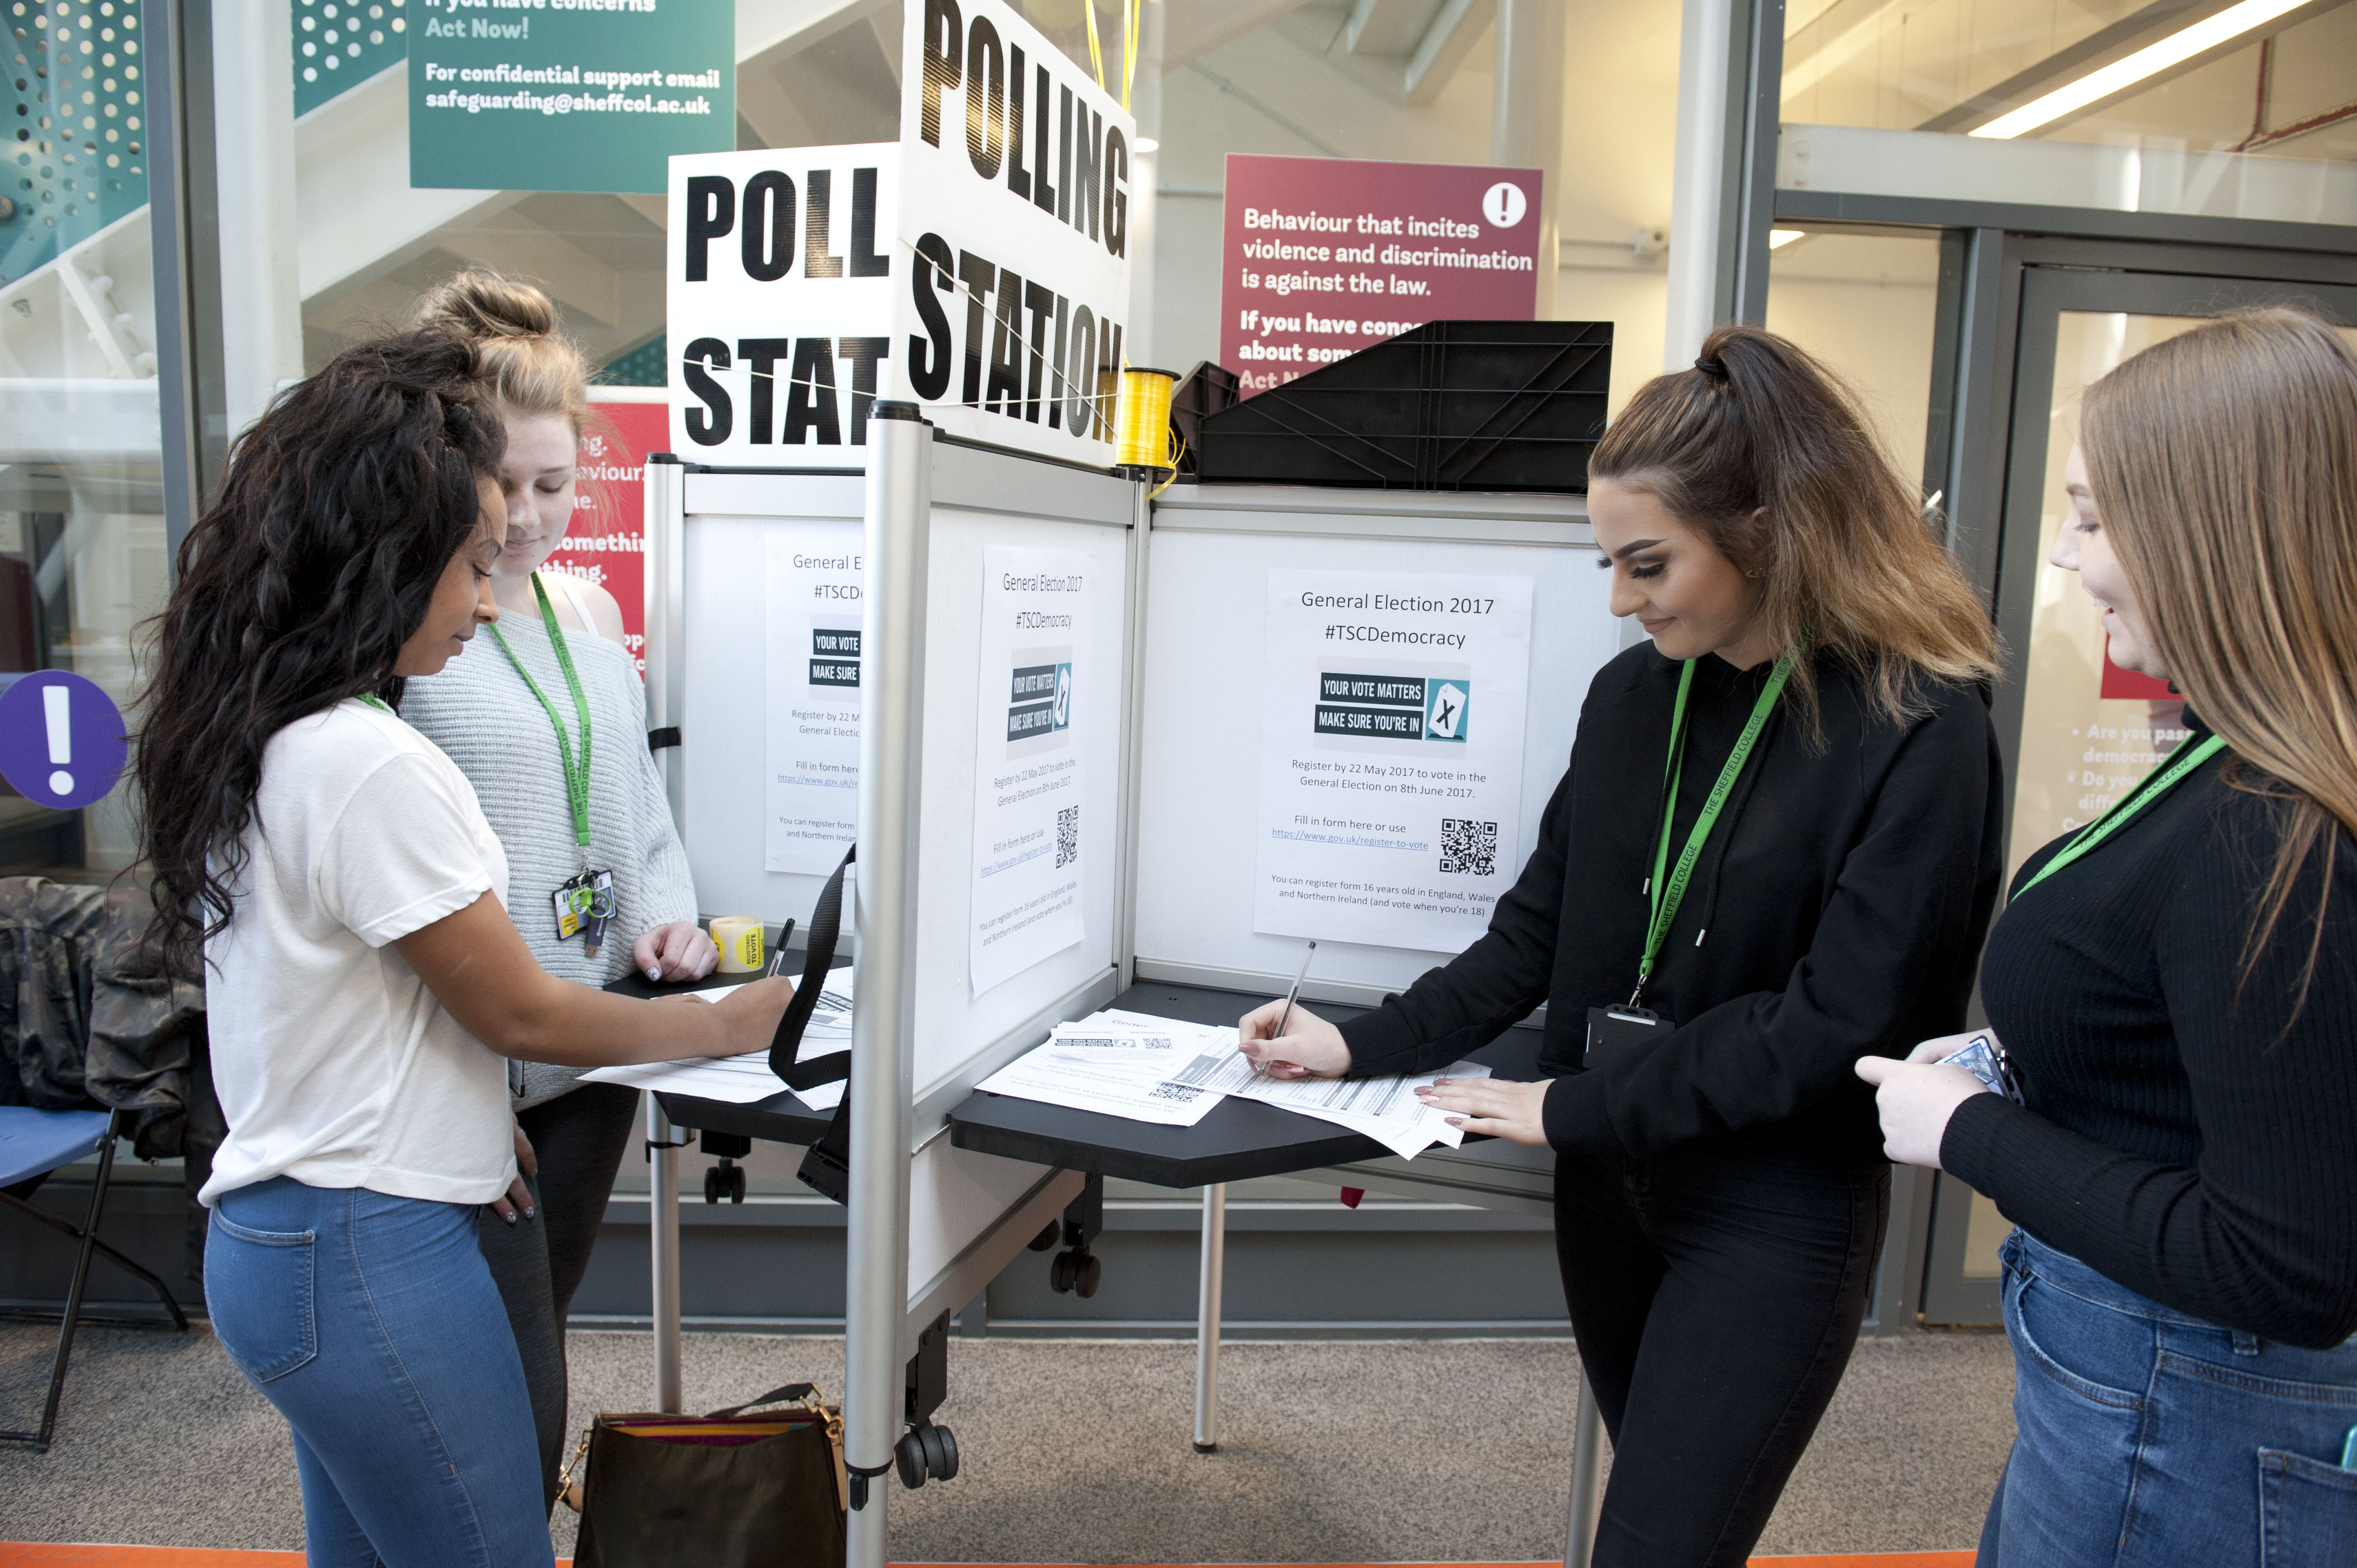 Sheffield College Launches Polling Booths So Students Register To Vote